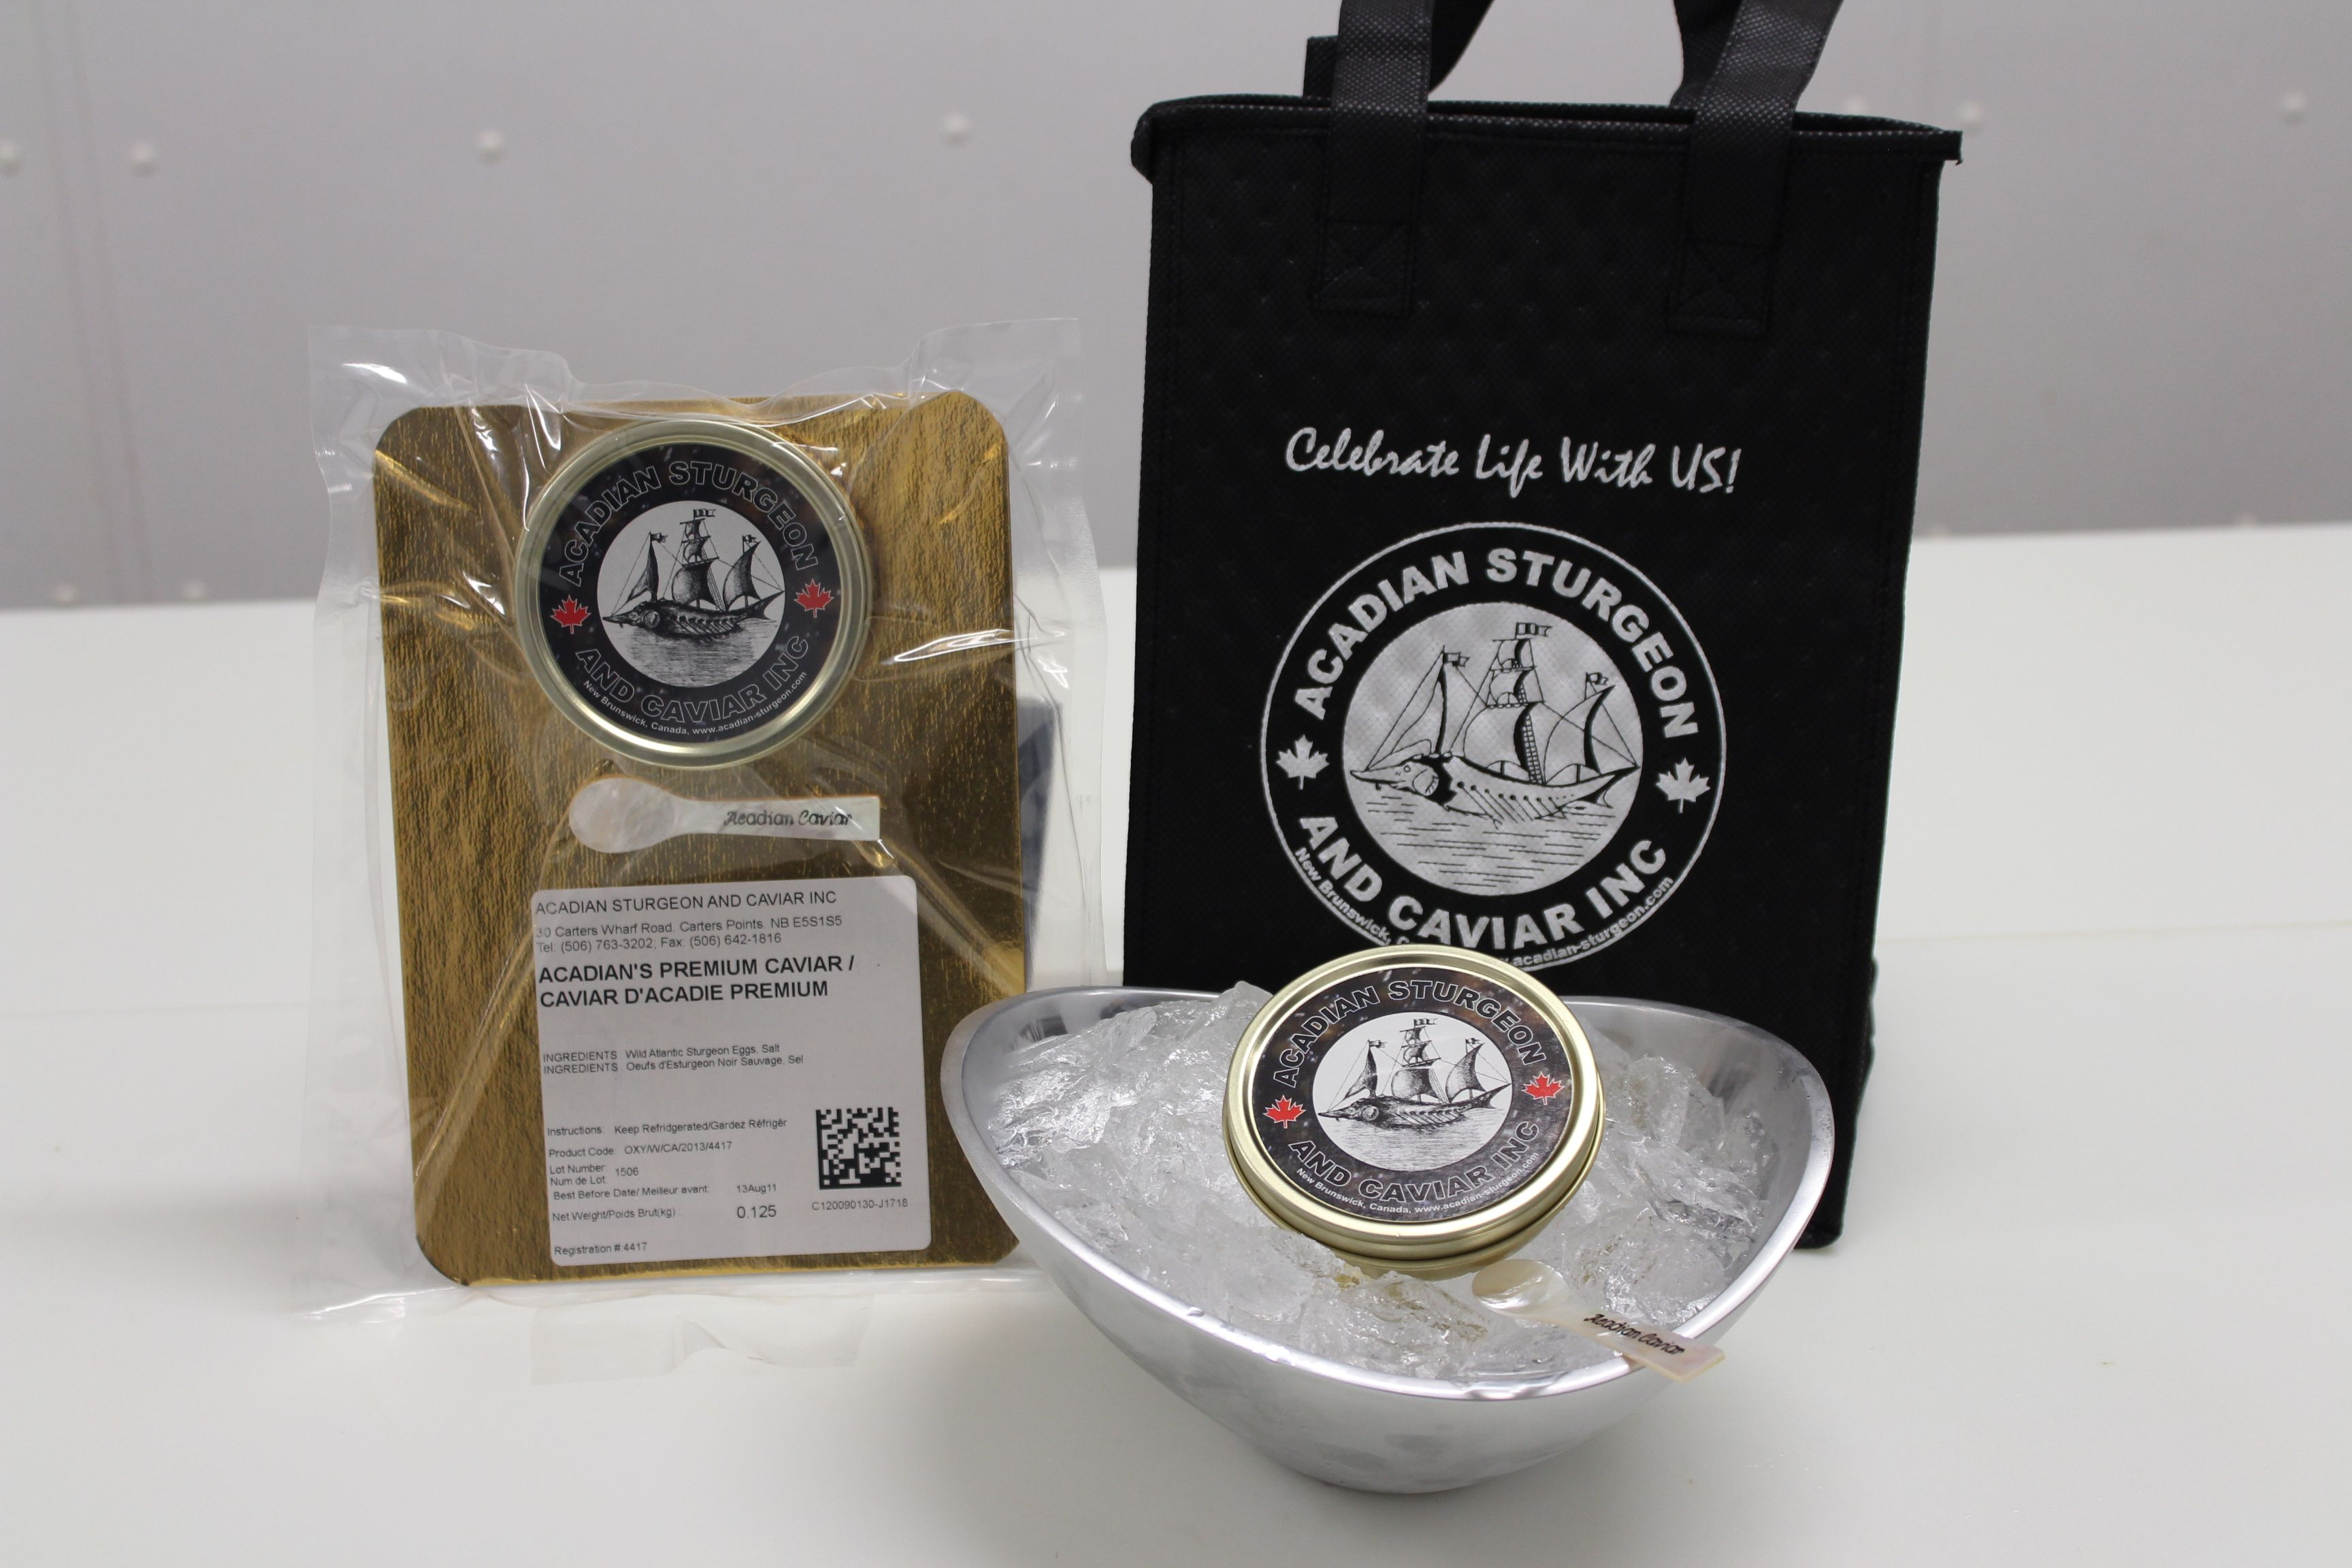 Acadian's premium caviar 125 g with mother of pearl spoon and gift bag!